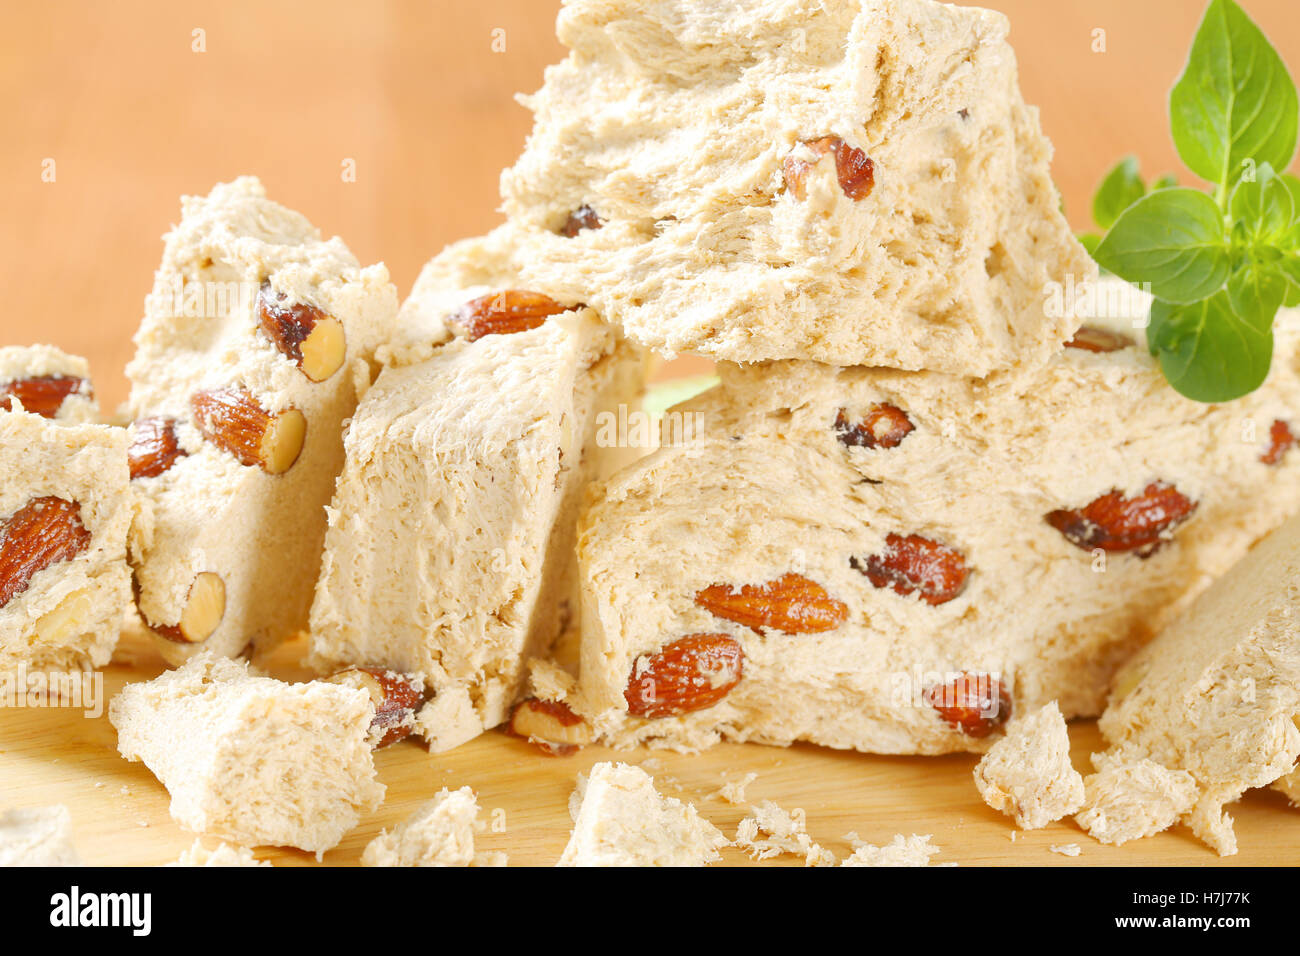 Pieces of Greek halva with almonds - Stock Image